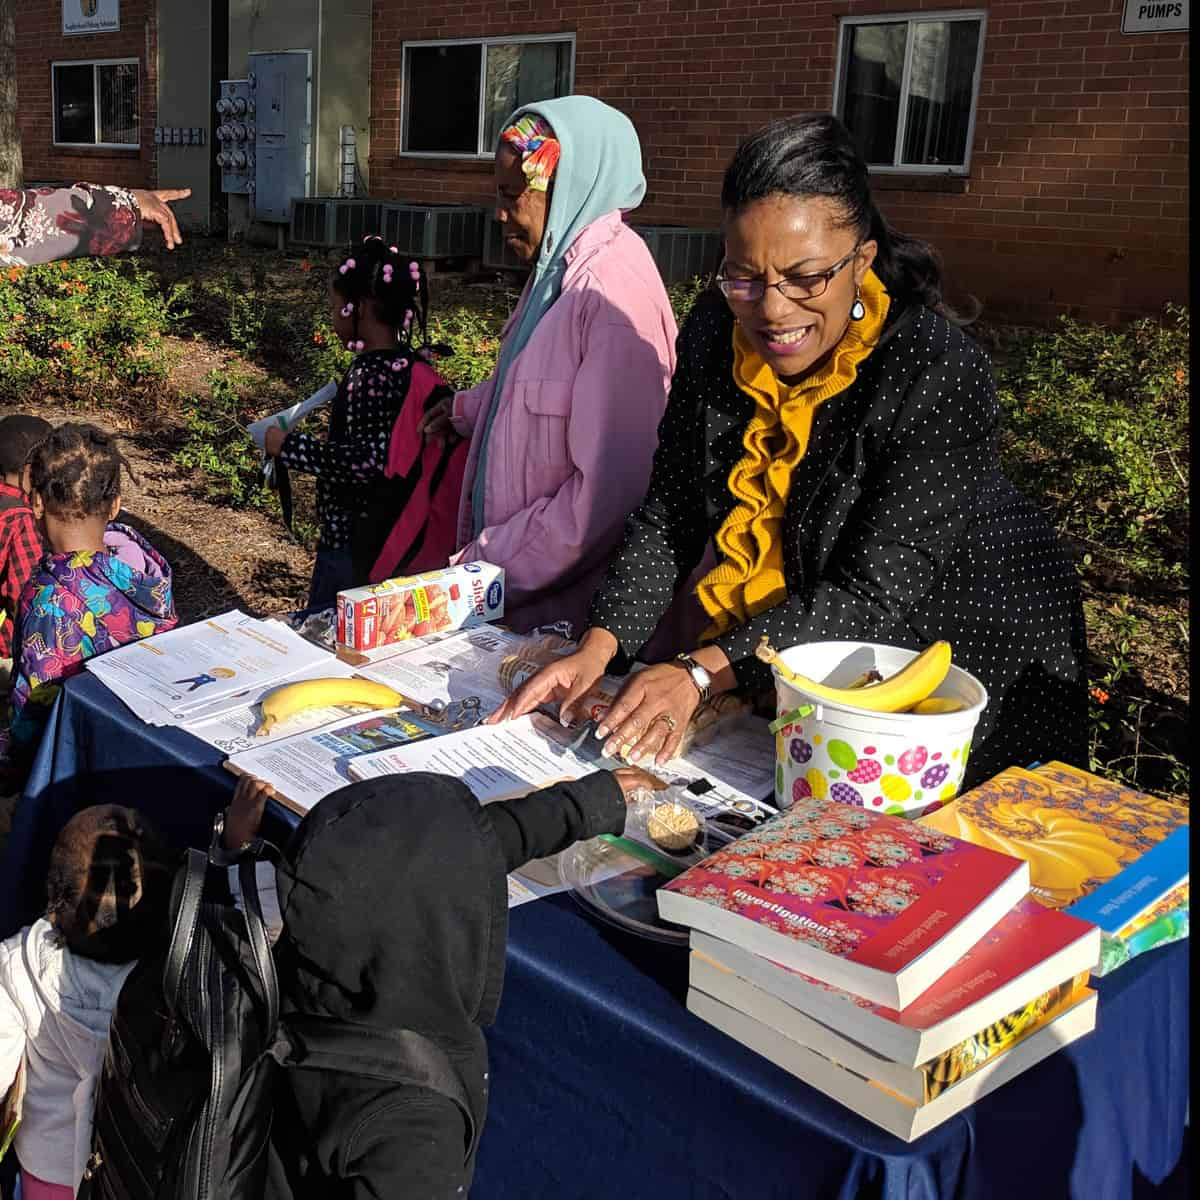 Family engagement coordinator distributes books and snacks to children at bus stop.